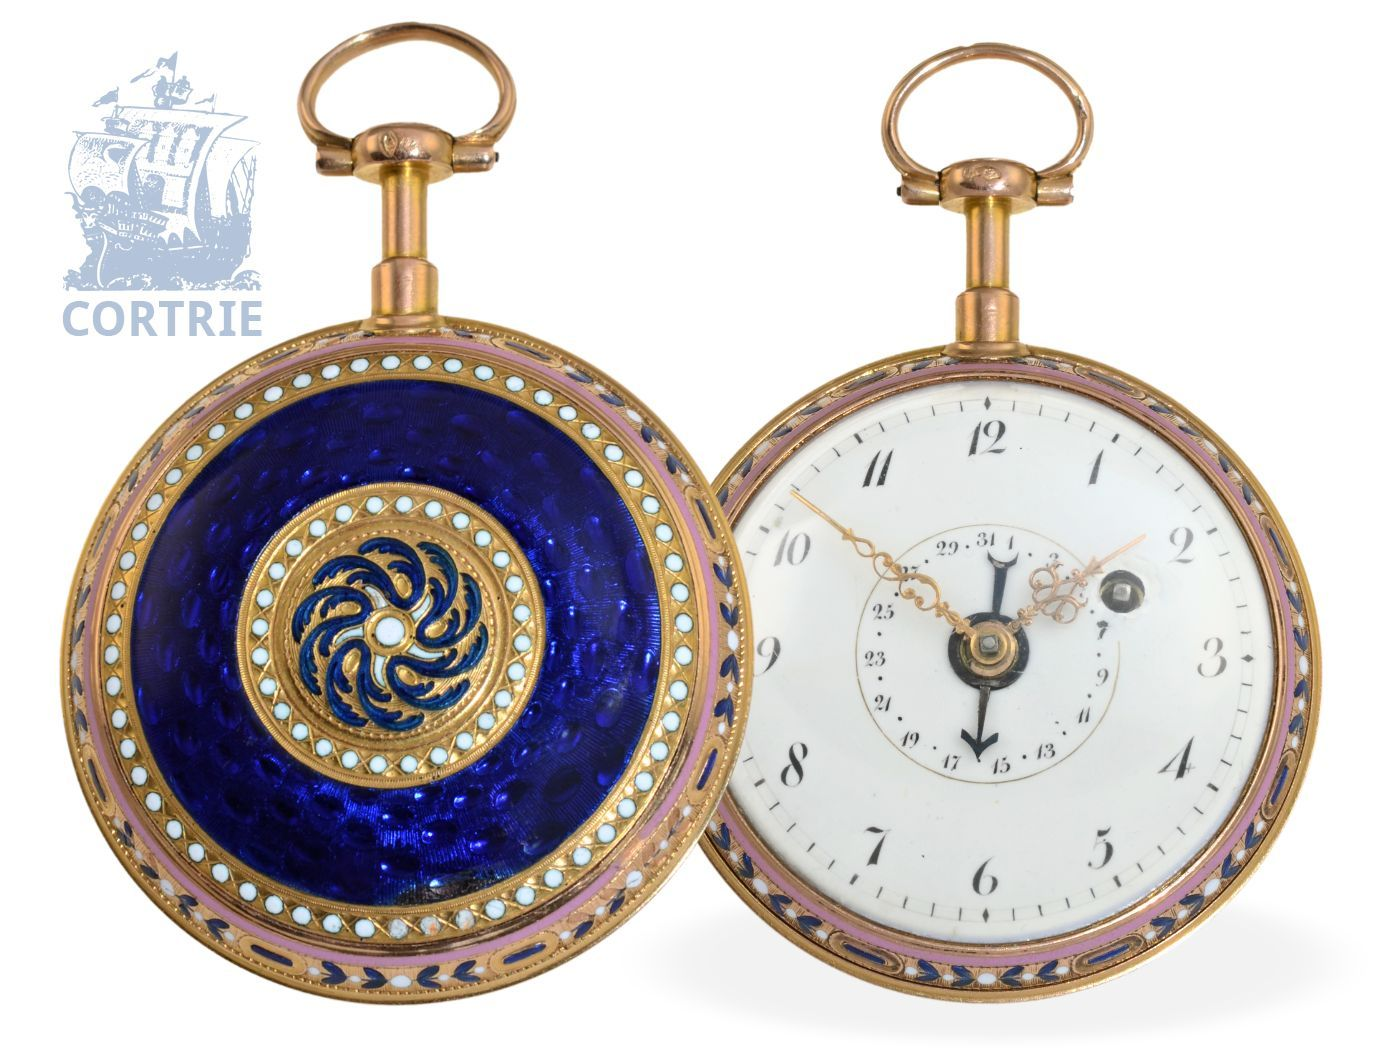 Pocket watch: gold/enamel pocket watch, prime quality case, with date, Francois Meyer Palais-Royal Paris 1771-1787-